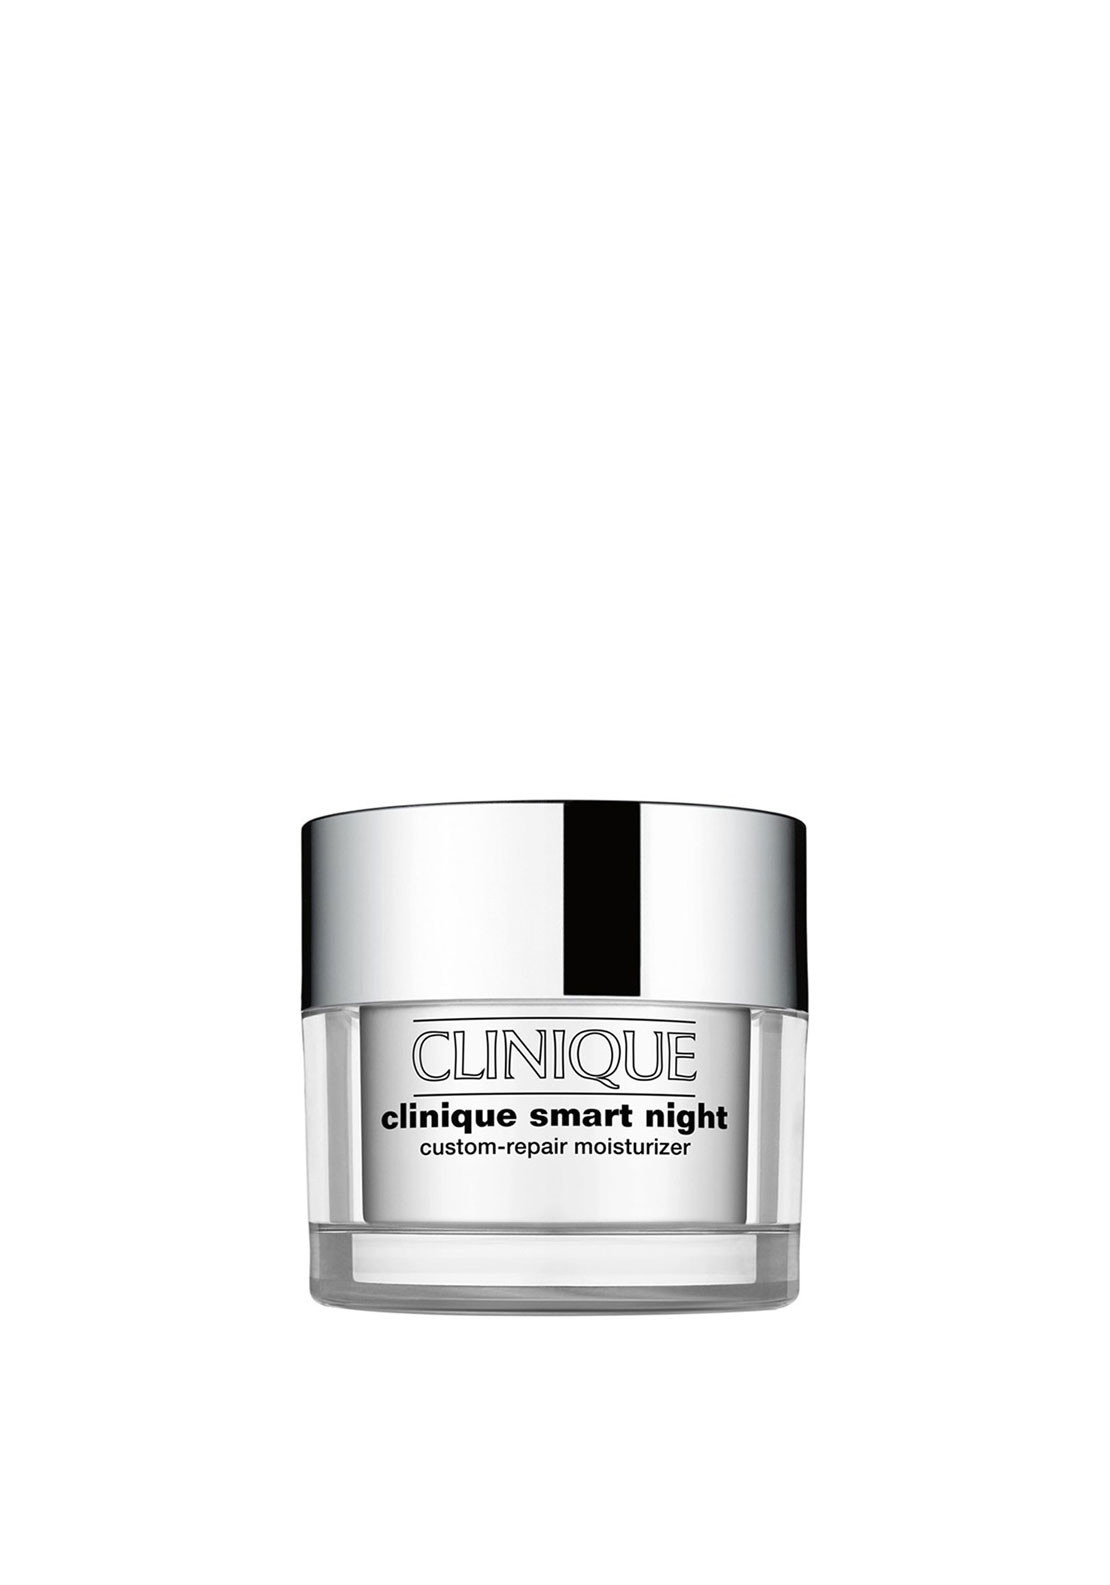 Clinique Smart Night Custom-Repair Moisturiser Cream, Combination Oily to Oily